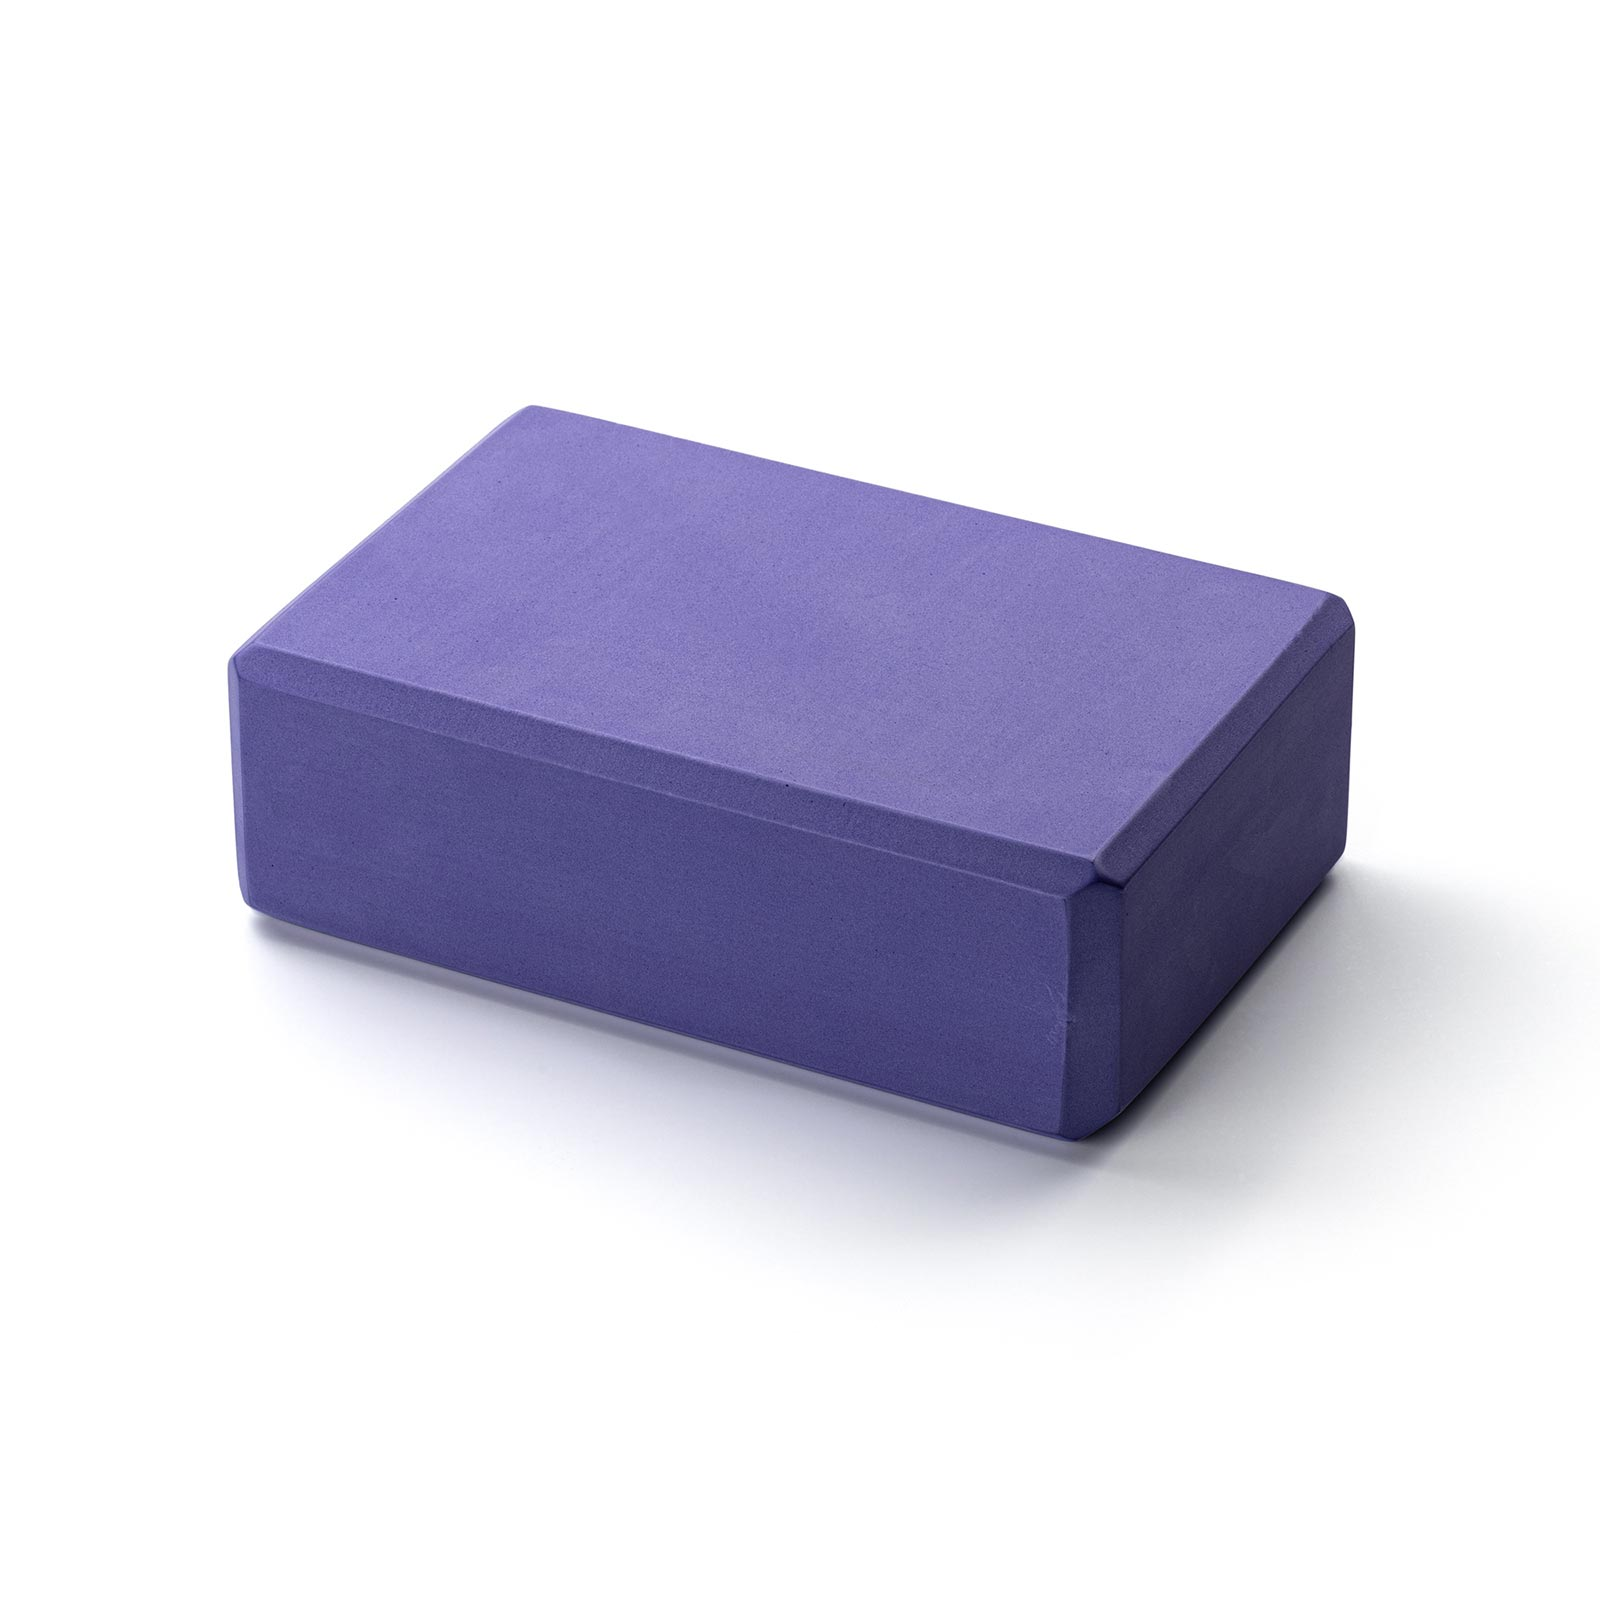 Kurma Yoga Foam Block Brick Purple